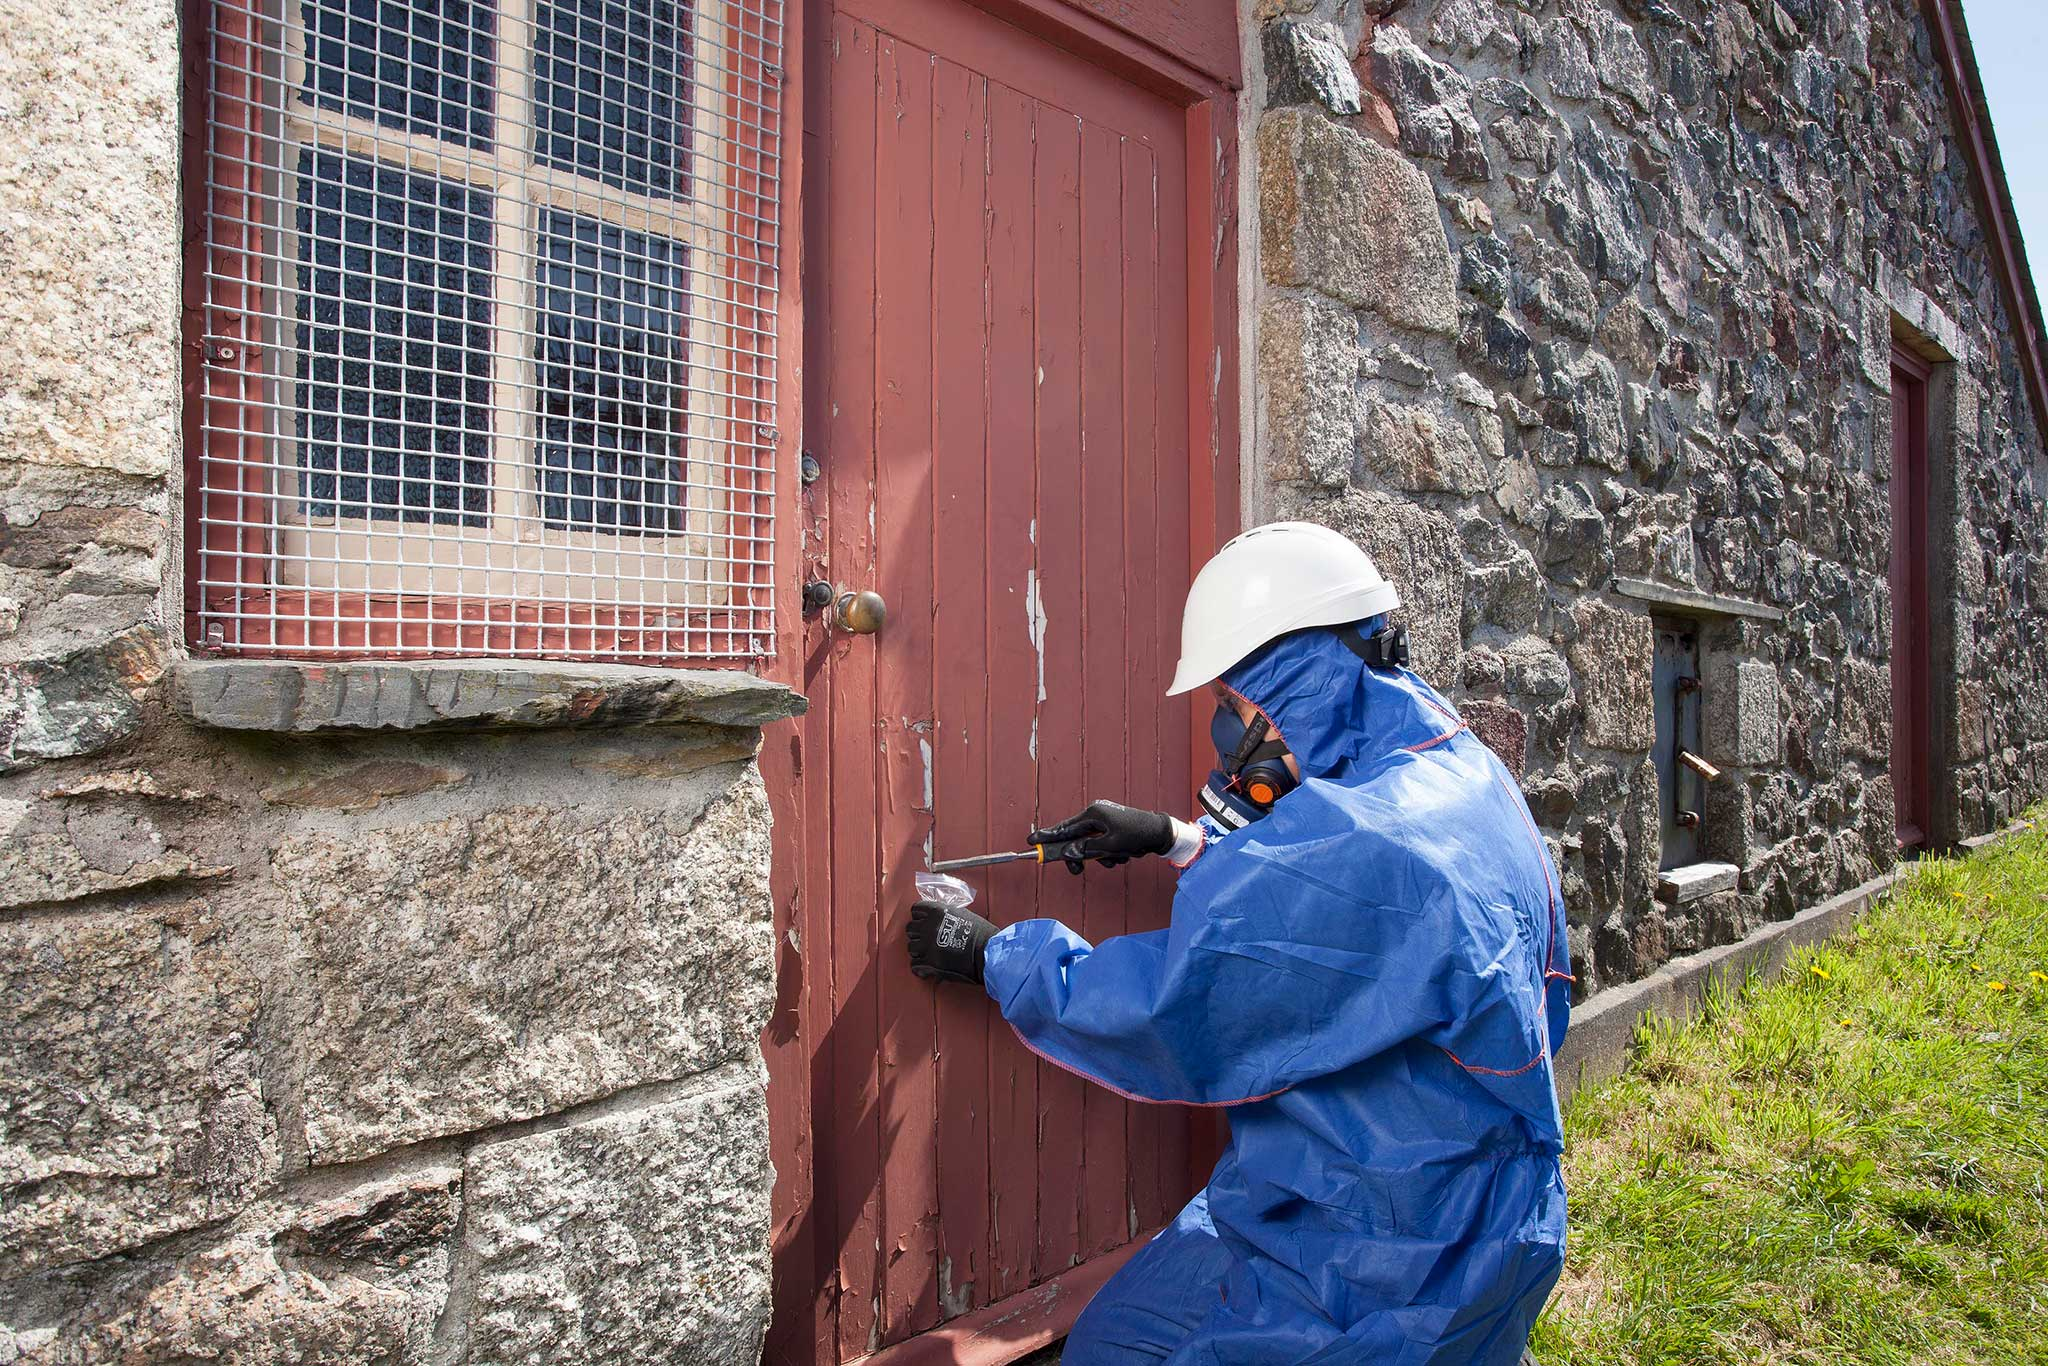 Allium surveyor testing an old door for lead paint